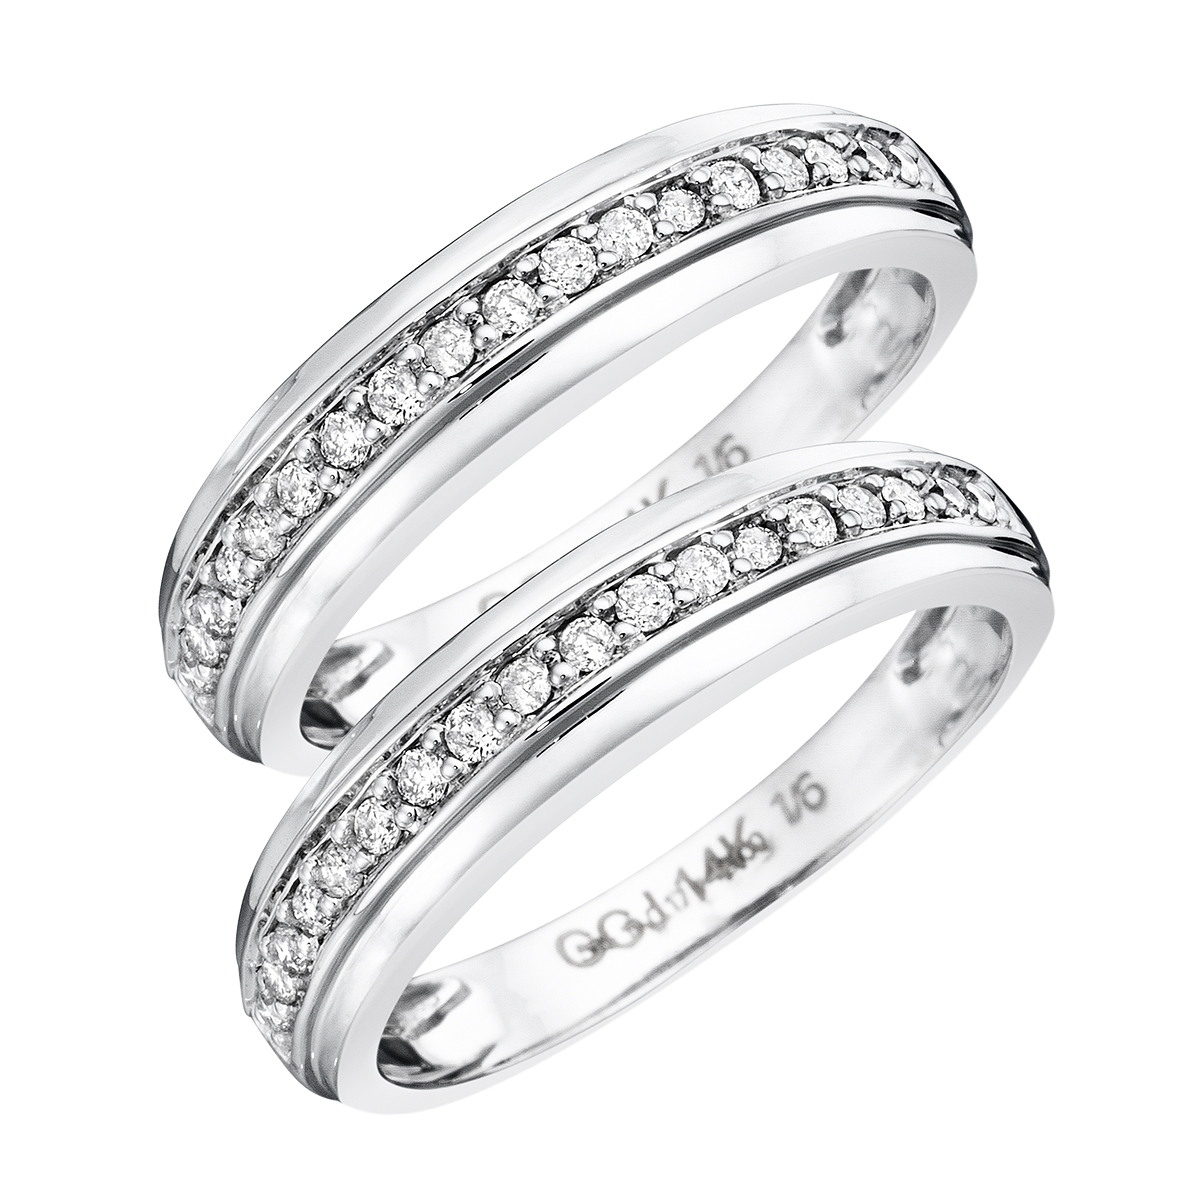 1/3 CT. T.W. Round Cut Ladies Same Sex Wedding Band Set 14K White Gold